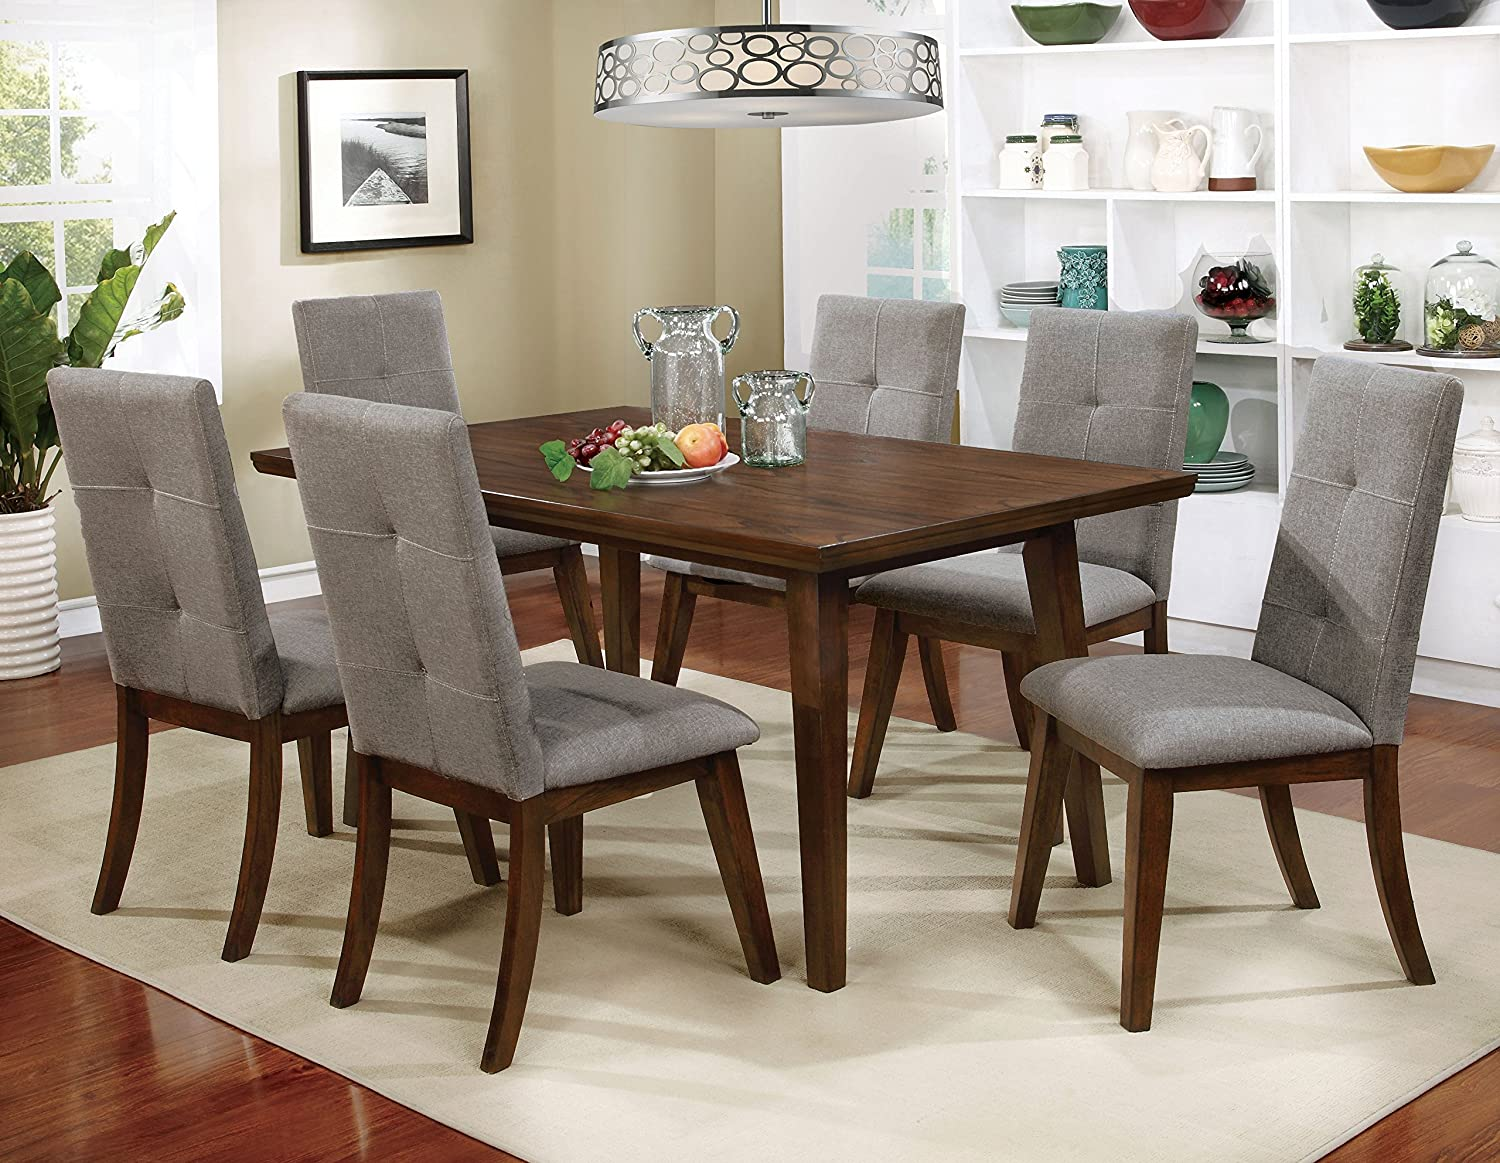 HOMES Inside Out IDF-3354T Jenka Walnut Jenak Mid-Century Modern Dining Table